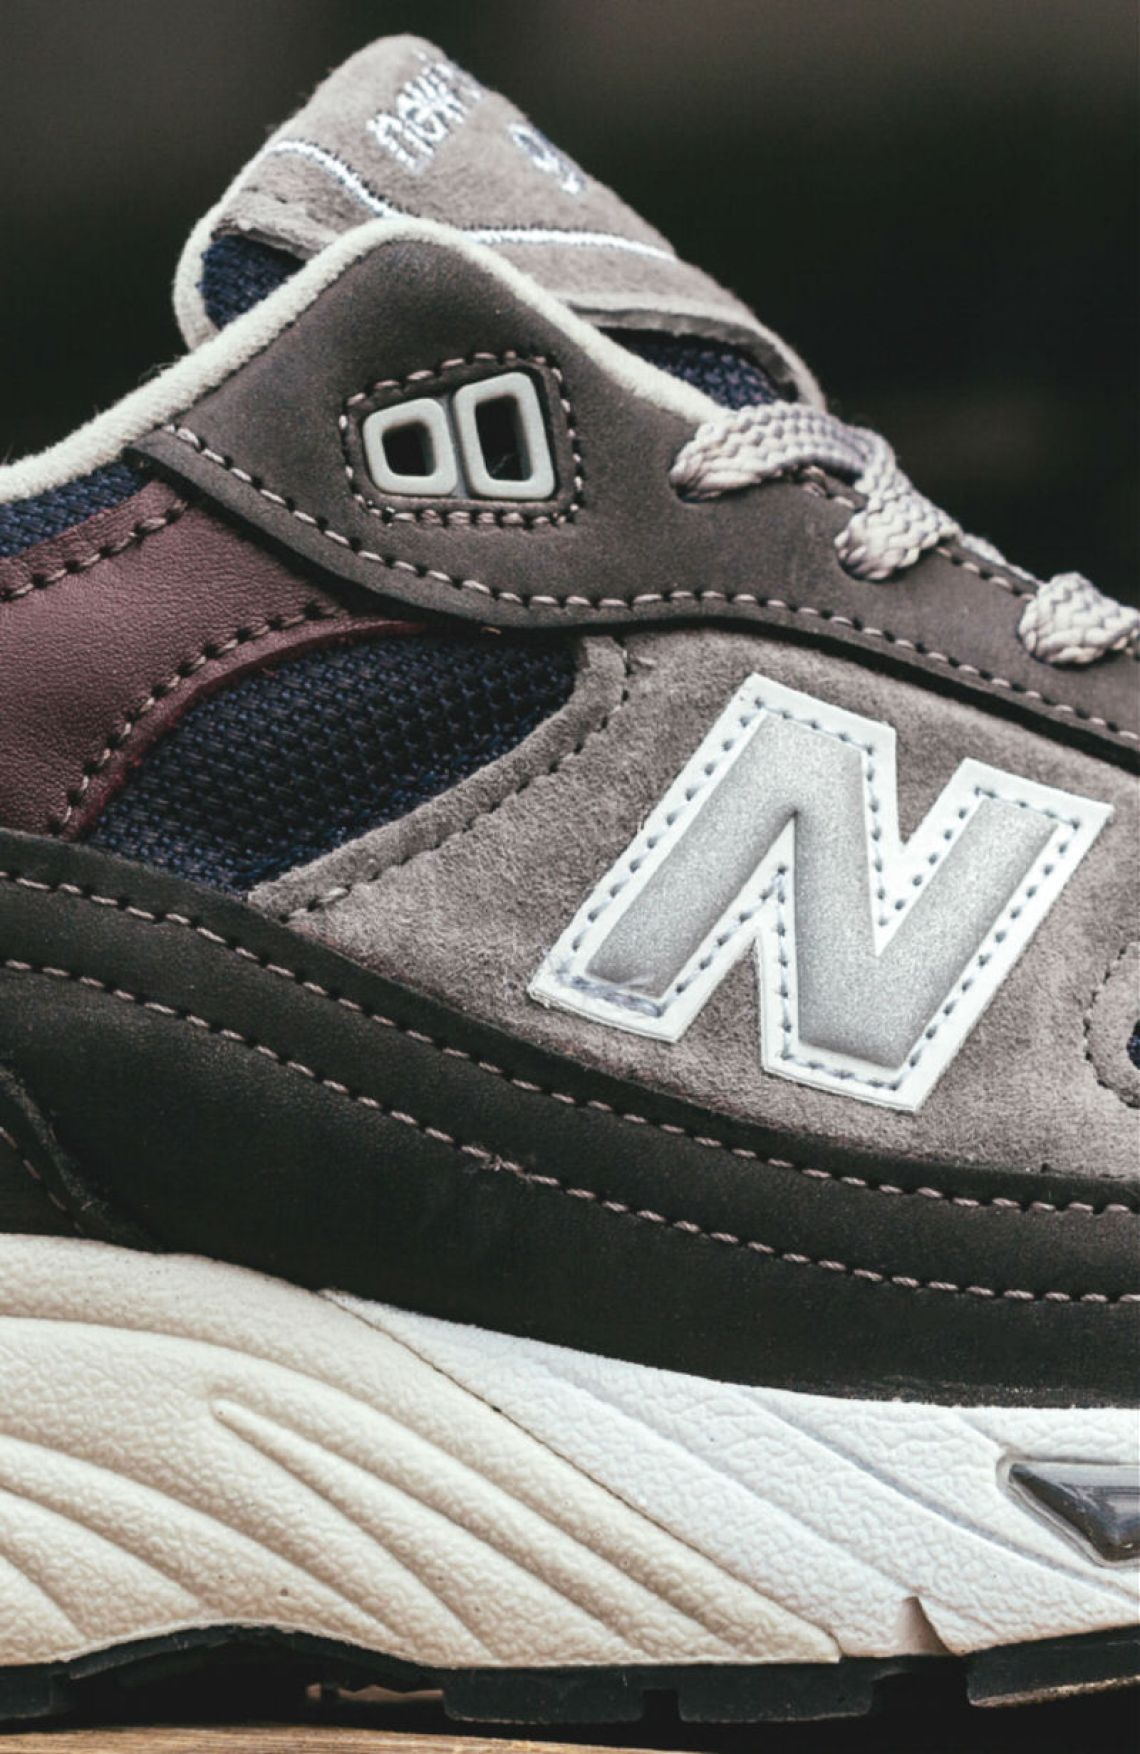 new balance 991 made in uk  u0026quot grey  white u0026quot       available now